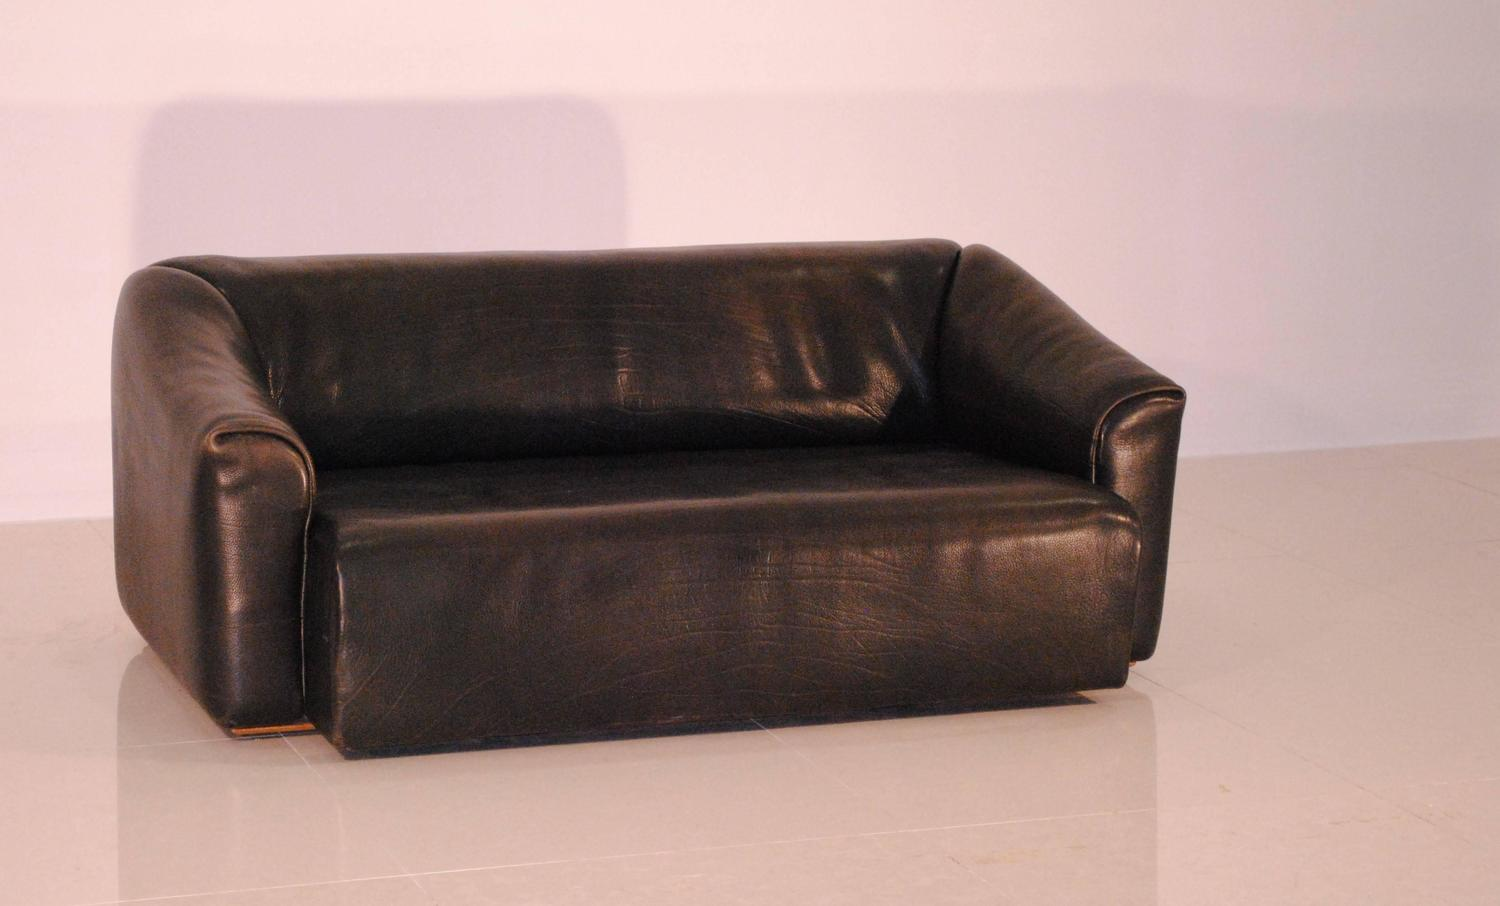 De Sede Ds 47 Grey Buffalo Leather Lounge Sofa 1970s For Sale At 1stdibs